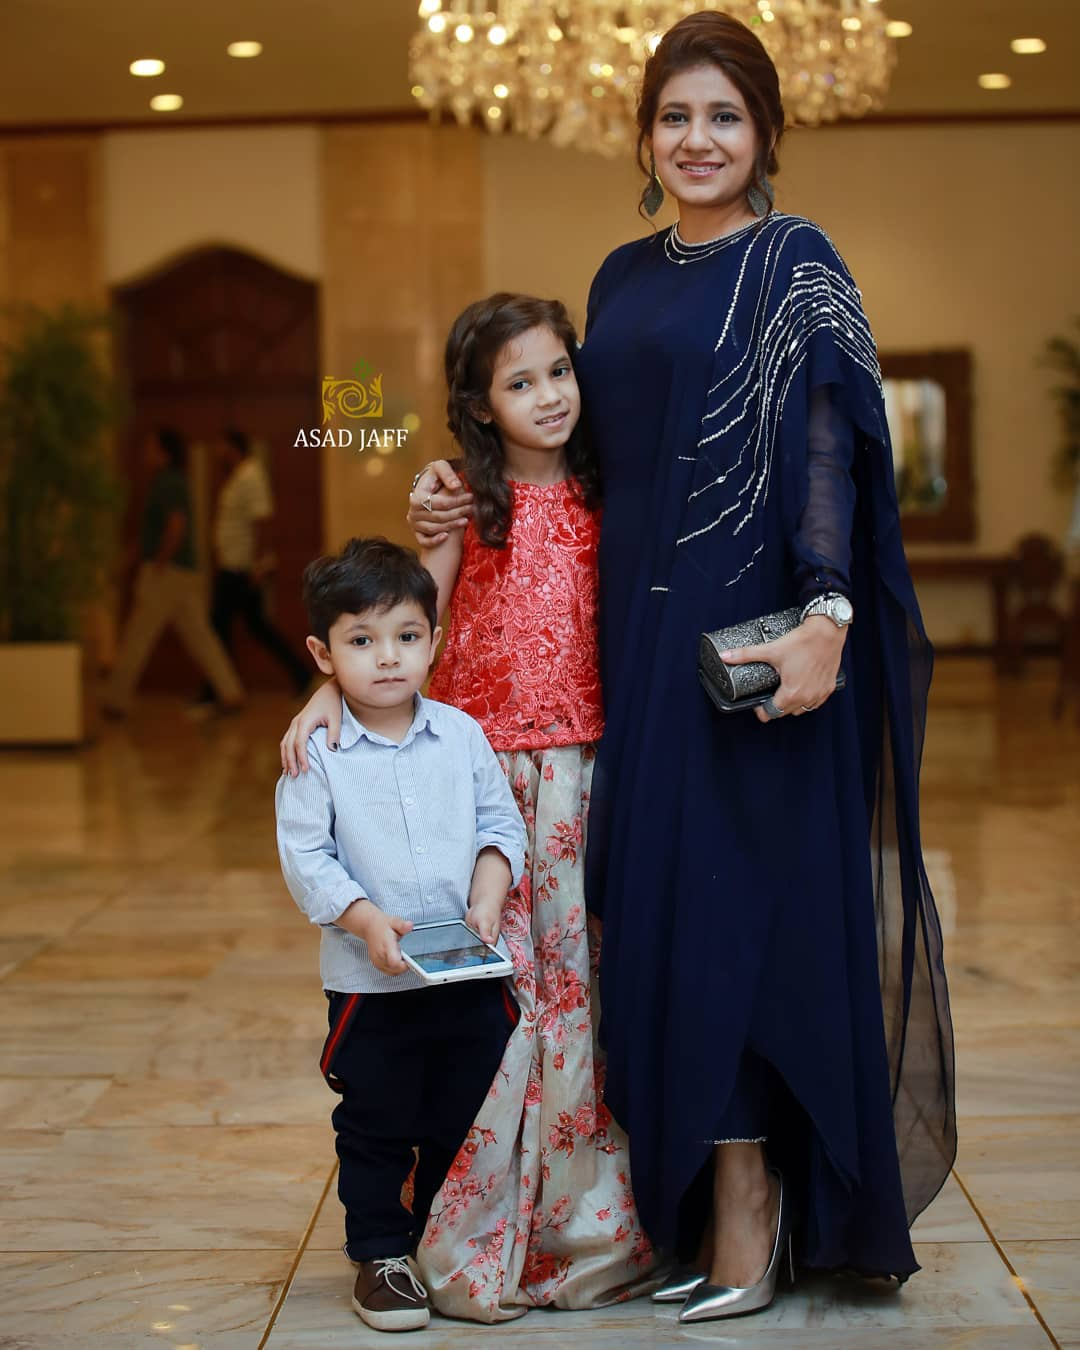 Famous Host and Actor Fahad Mustafa with Family at Function | Check Superb Pictures